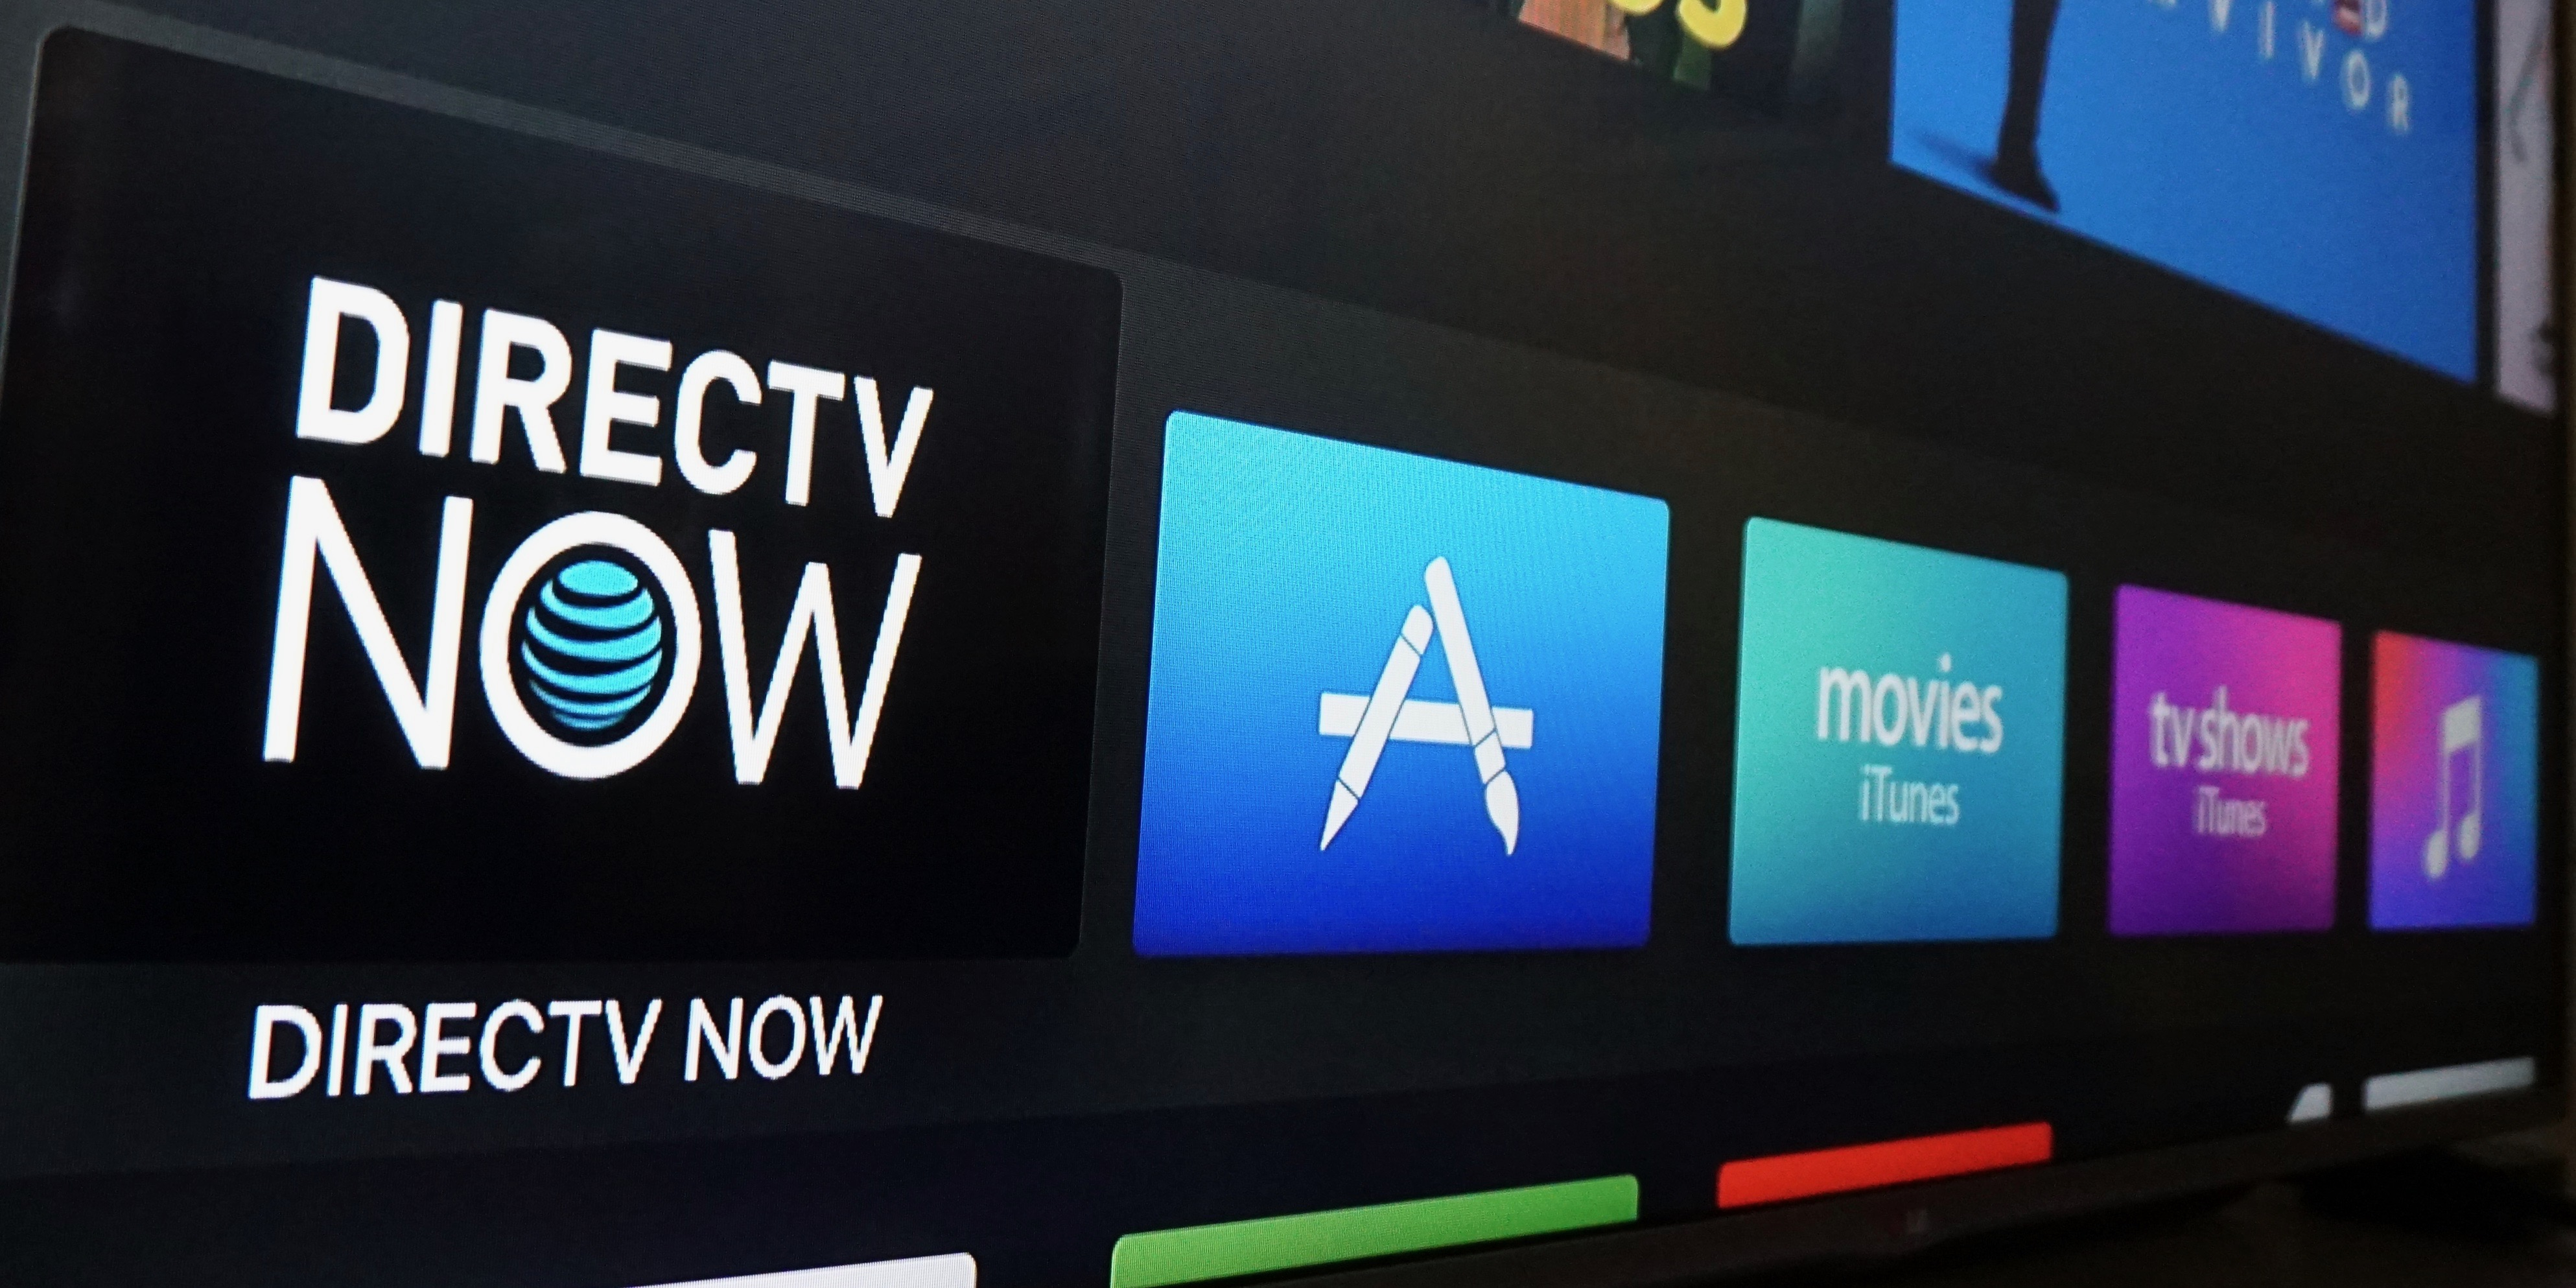 CBS reaches deal to bring The CW, Showtime, & more to DirecTV Now